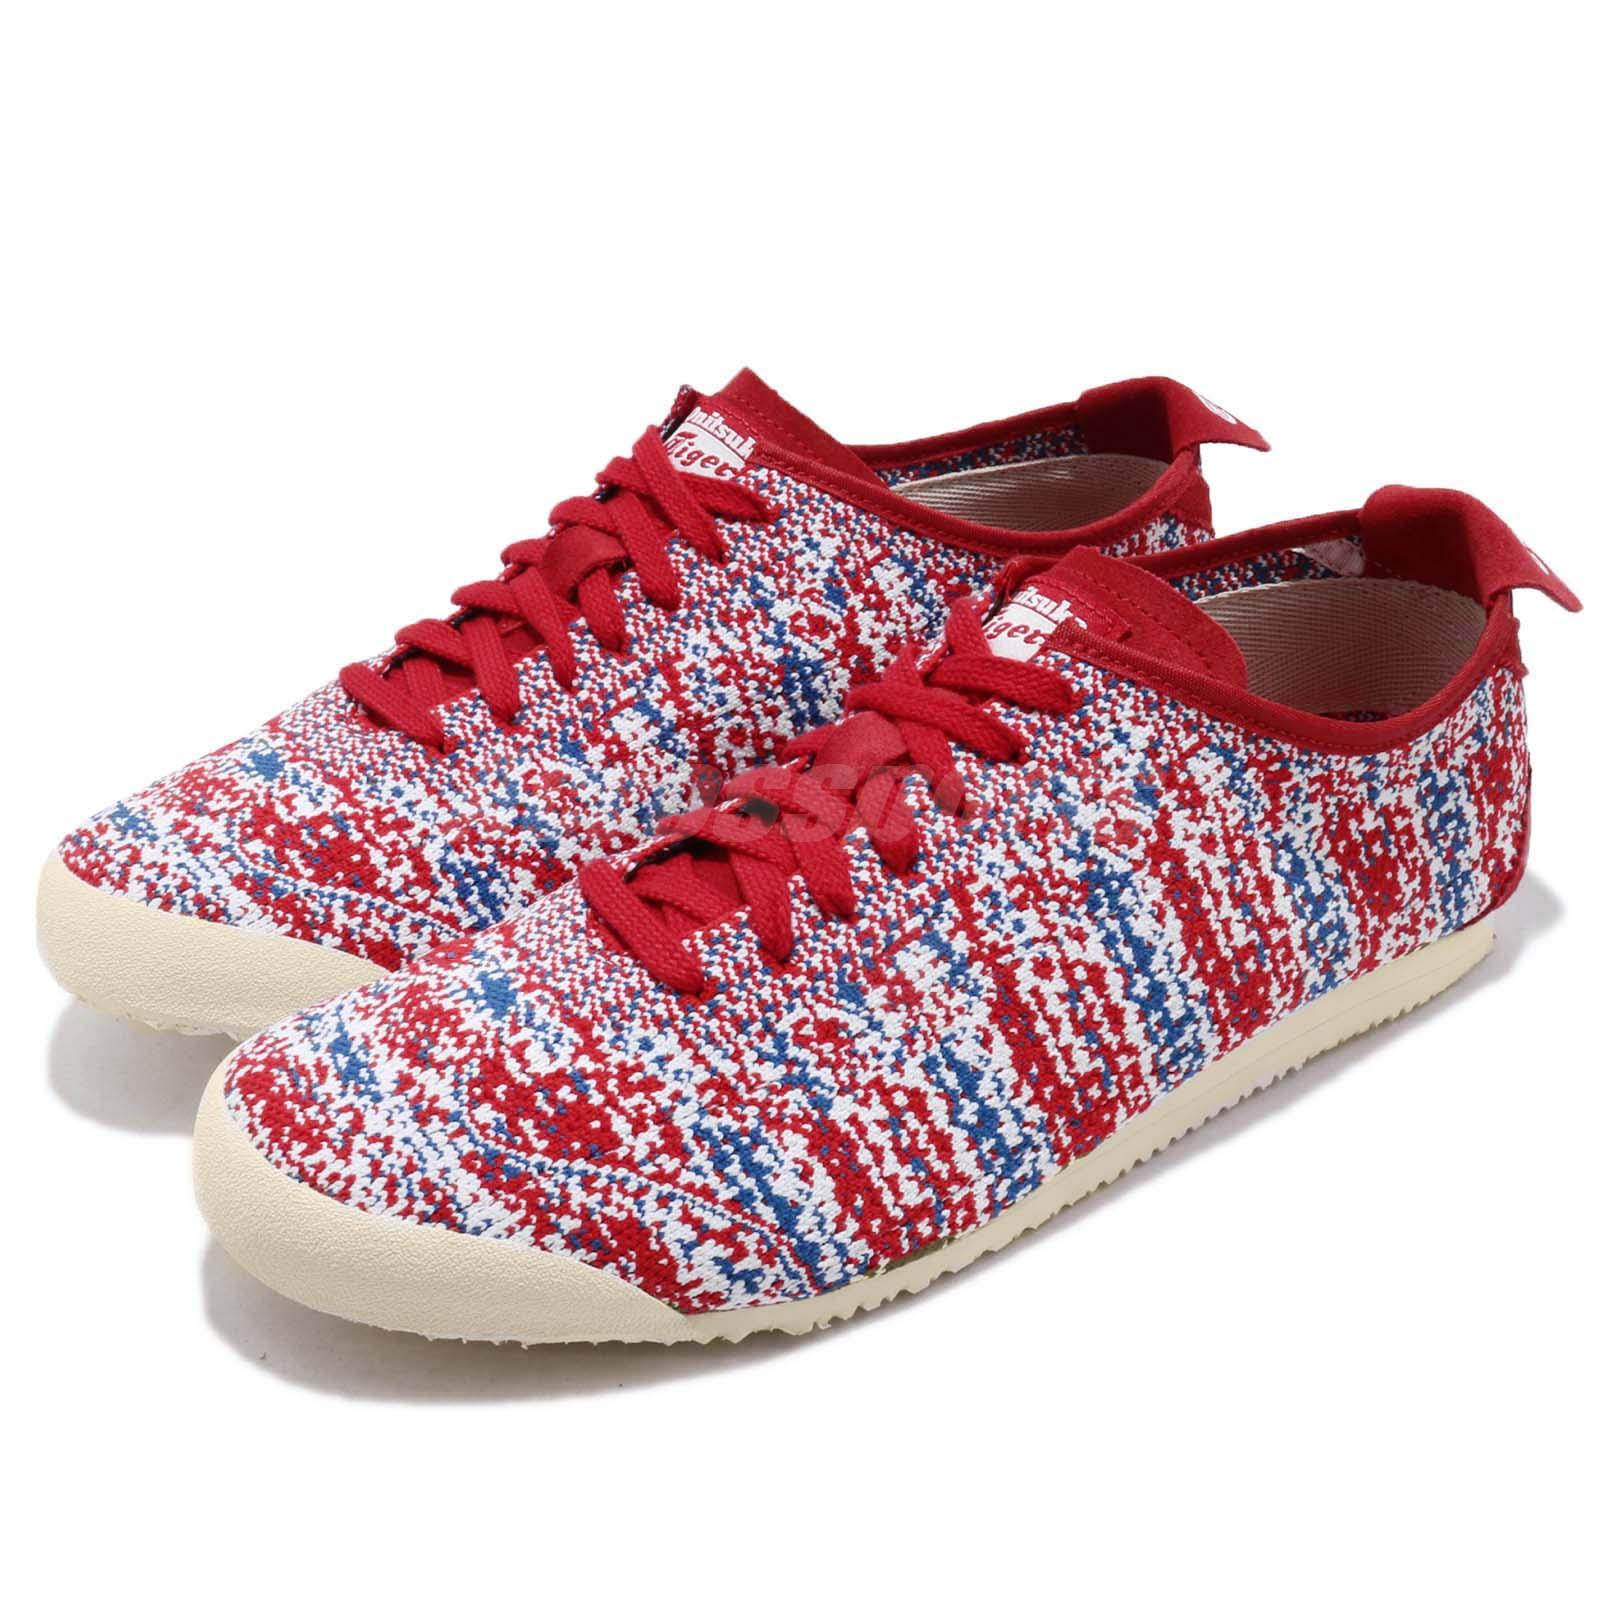 onitsuka tiger mexico 66 sd philippines women's kil